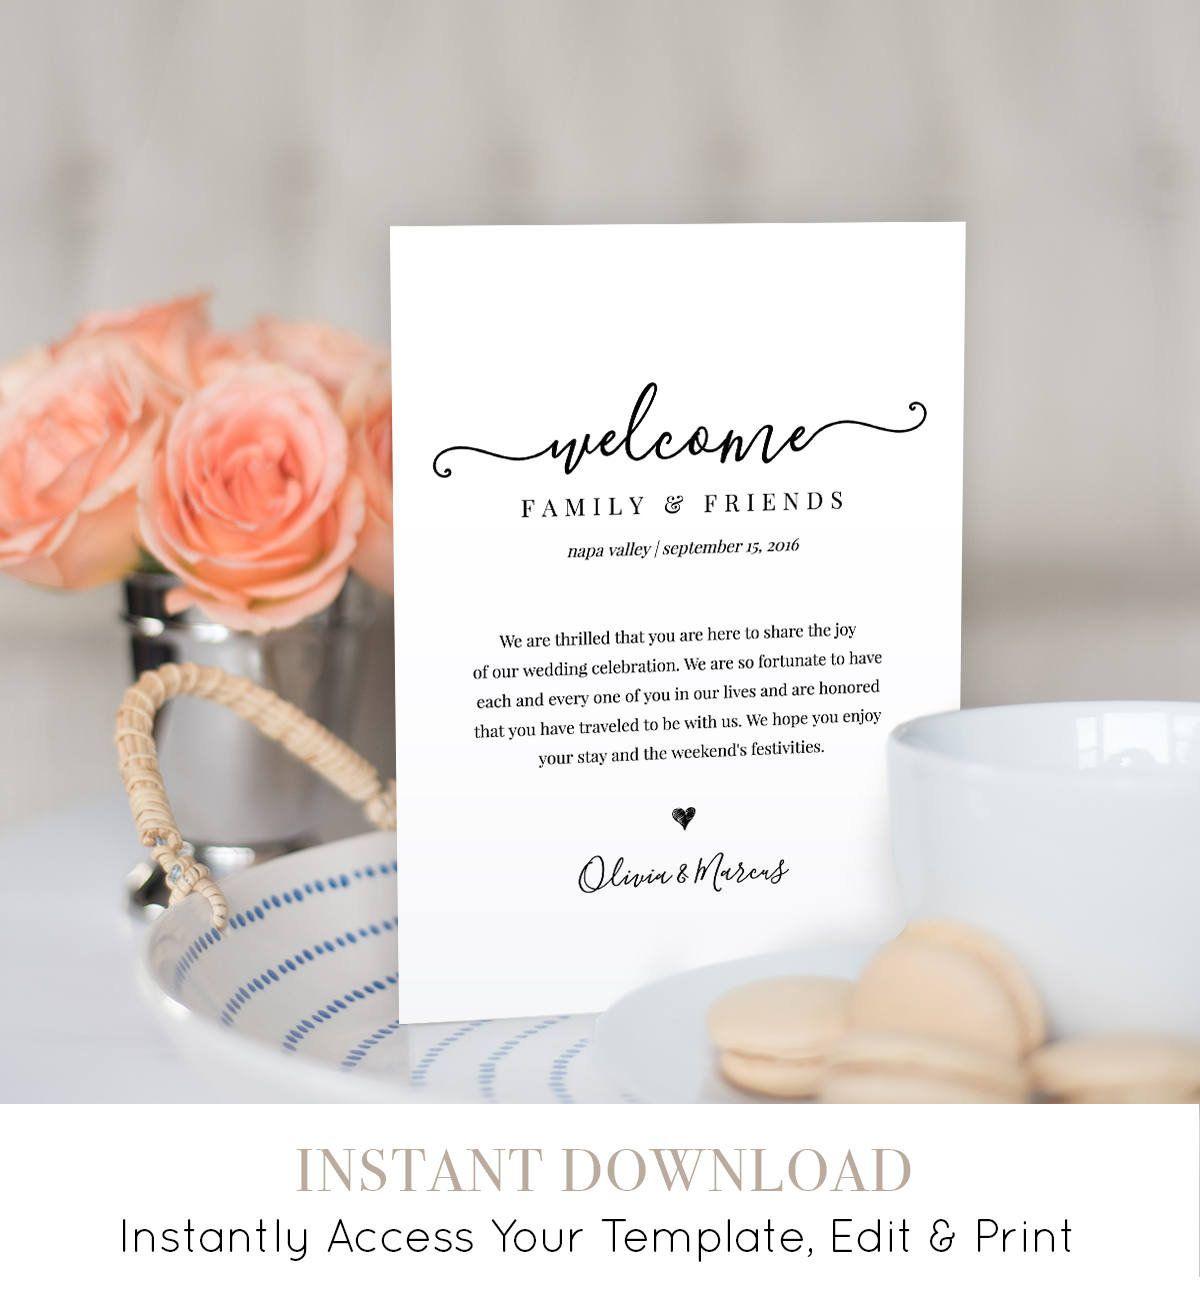 Wedding Welcome Bag Note Welcome Bag Letter Printable Etsy Wedding Itinerary Template Wedding Welcome Bags Wedding Itinerary Wedding welcome bag letter template